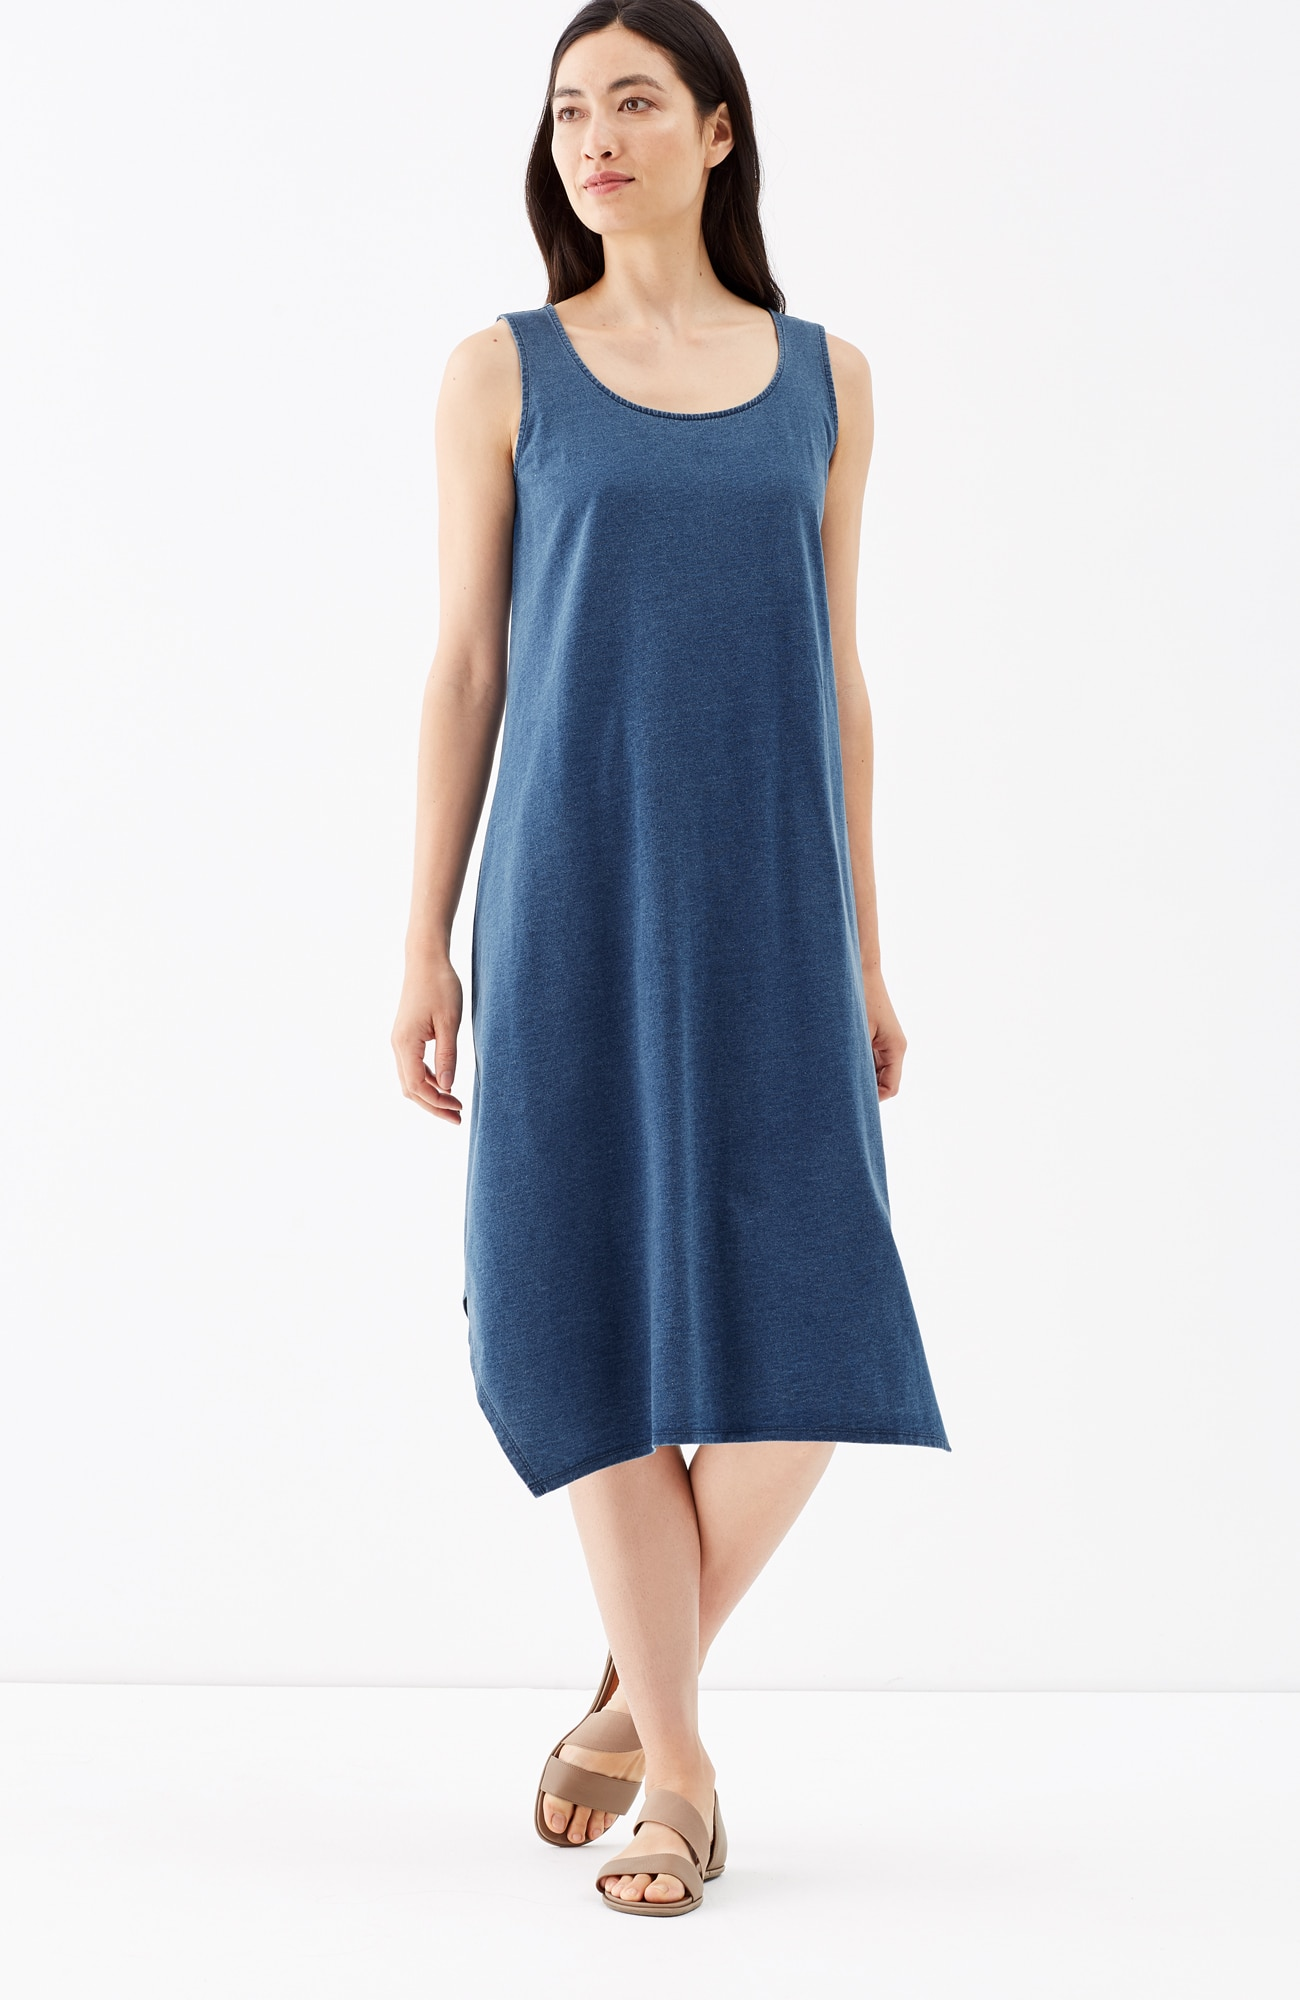 Pure Jill indigo knit dipped-hem dress